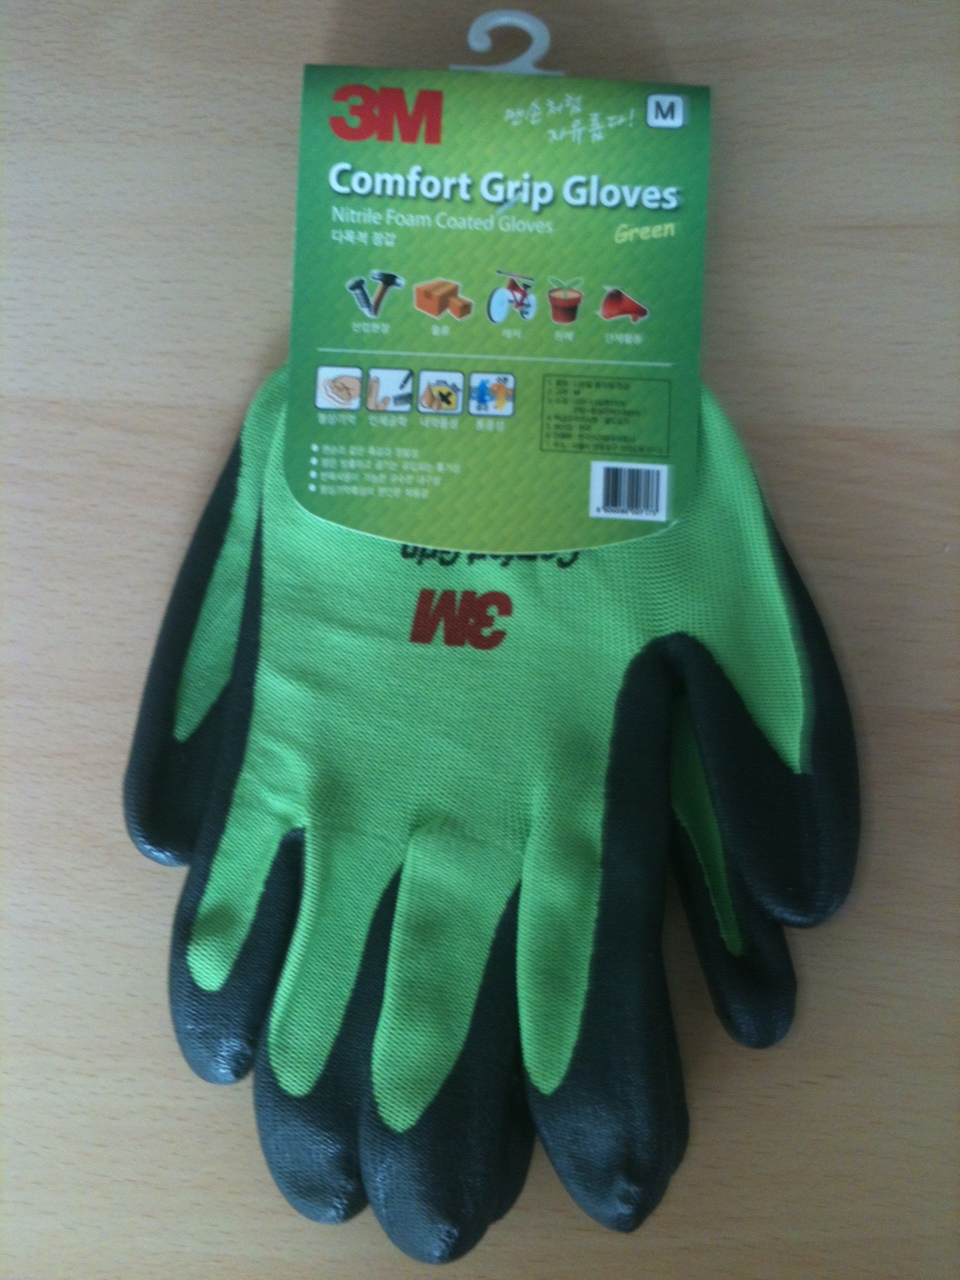 3M Comfort Grip Work Gloves, Nitrile Coated